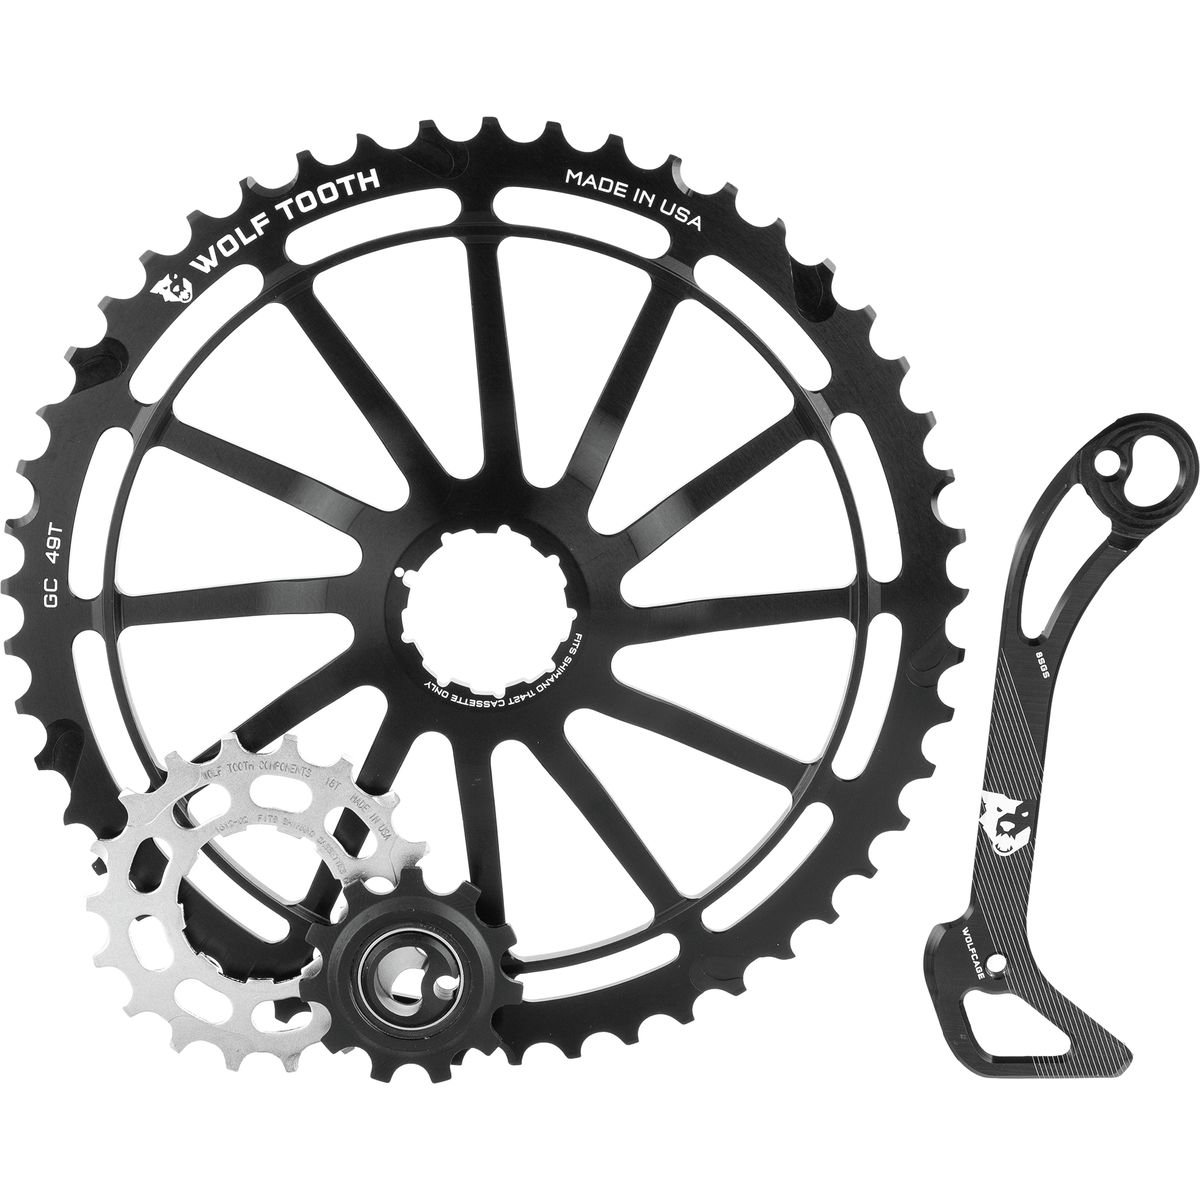 Wolf Tooth Components WolfCage Combo Pack: Includes 49T Cog, 18T Cog, and Derailleur Cage, Black